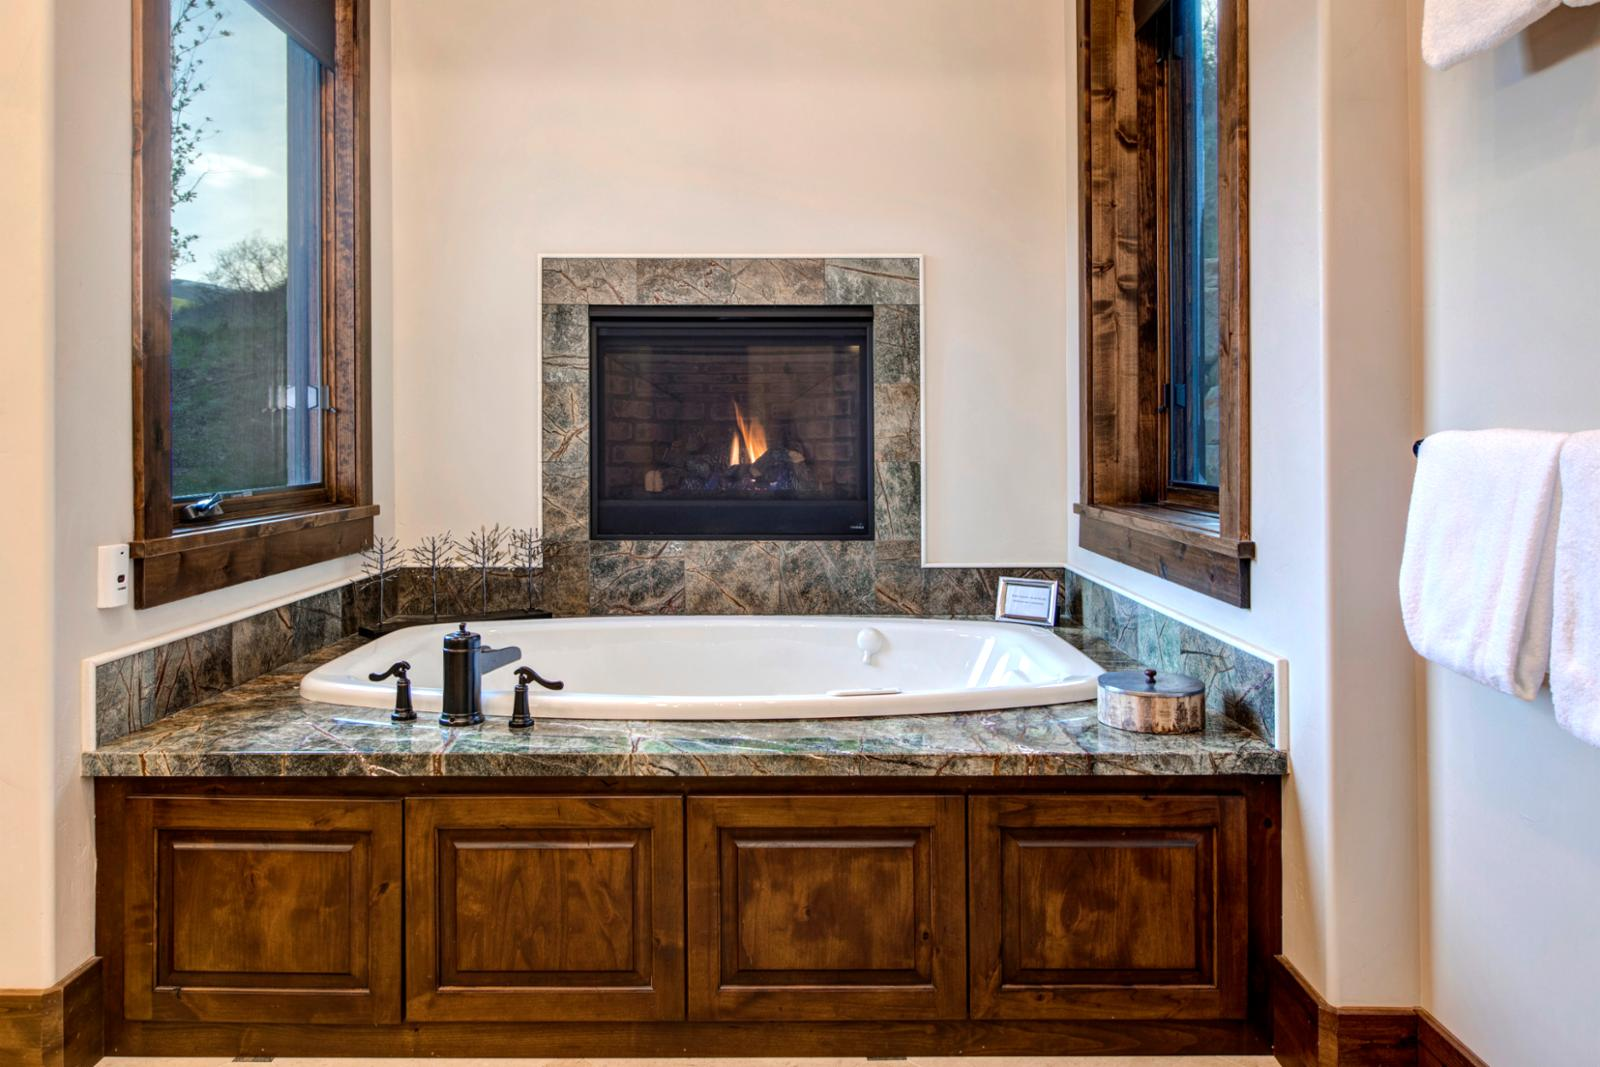 Master bathroom with fireplace and soaking tub, what more can you ask for?